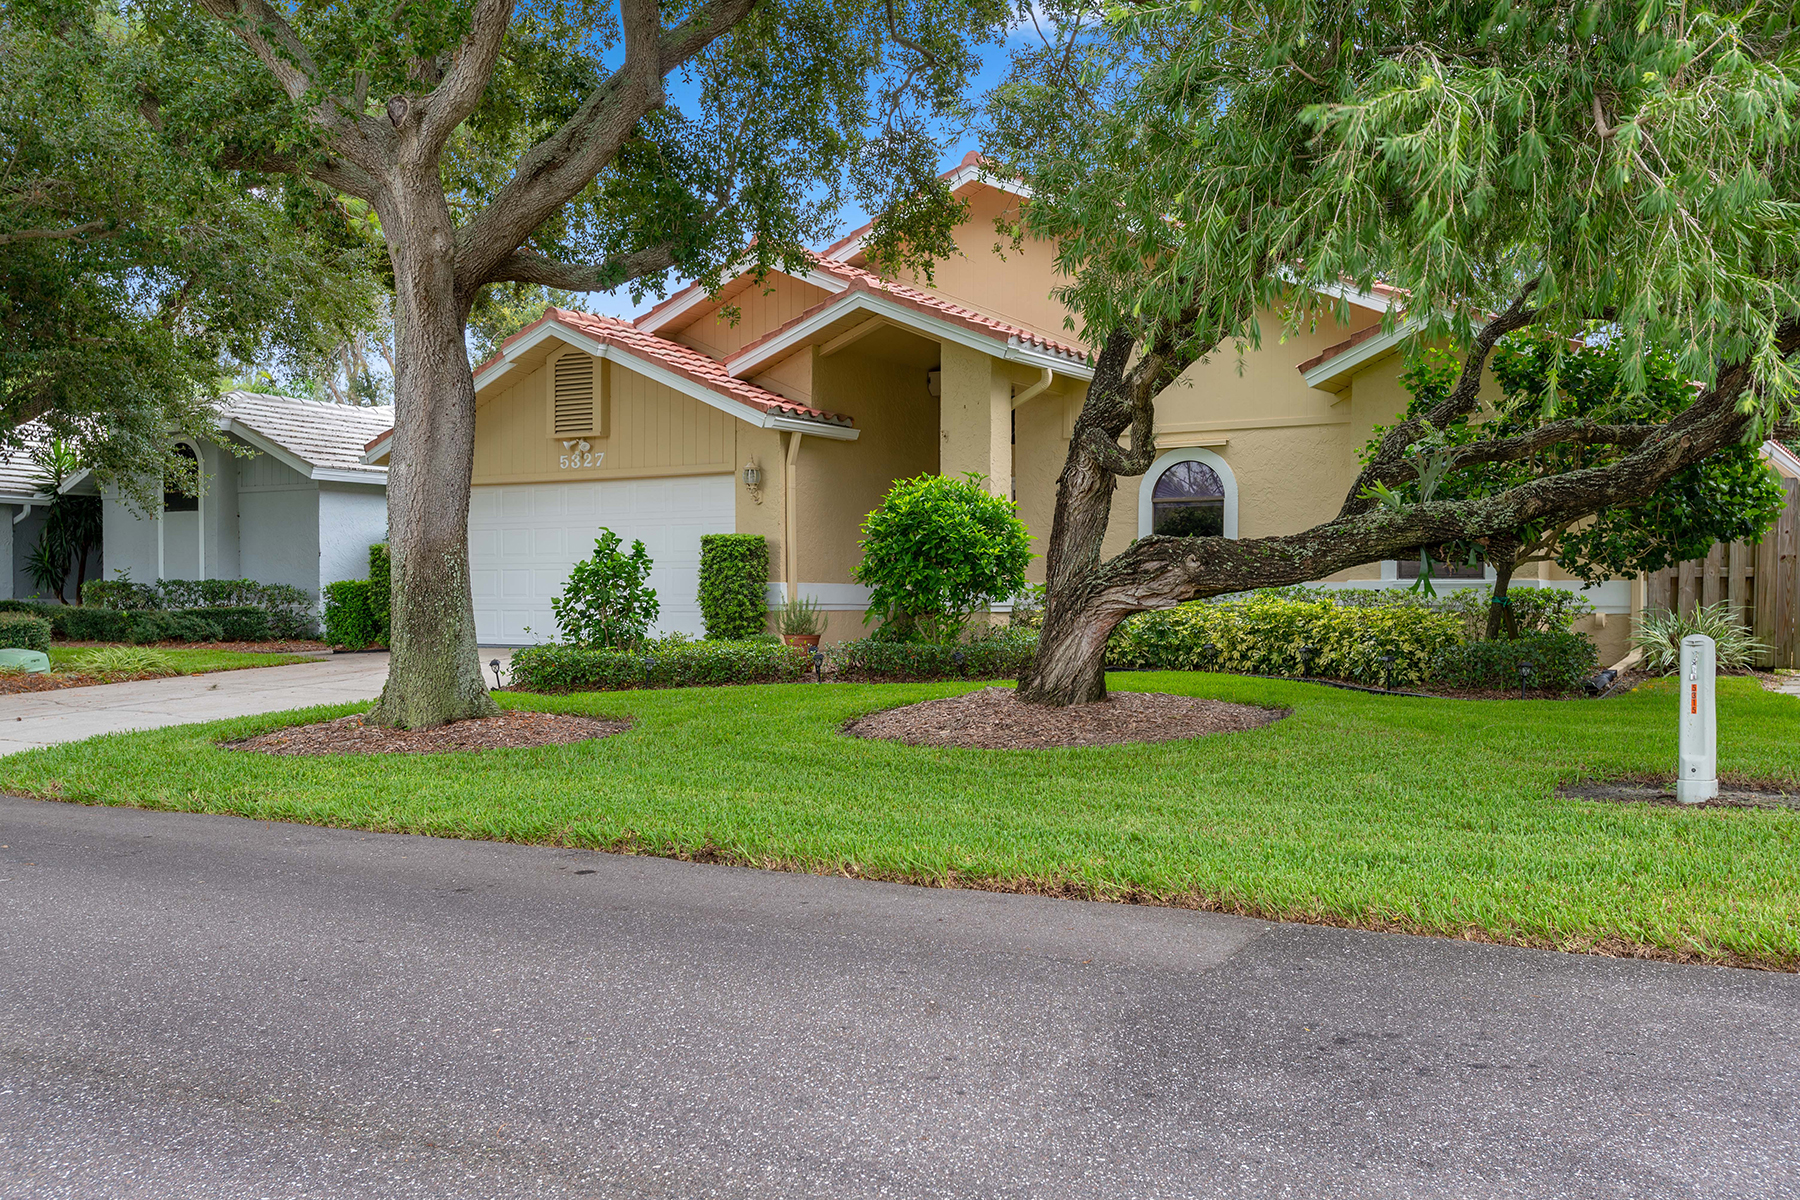 Single Family Homes for Sale at 5327 Venice Way St. Petersburg, Florida 33703 United States